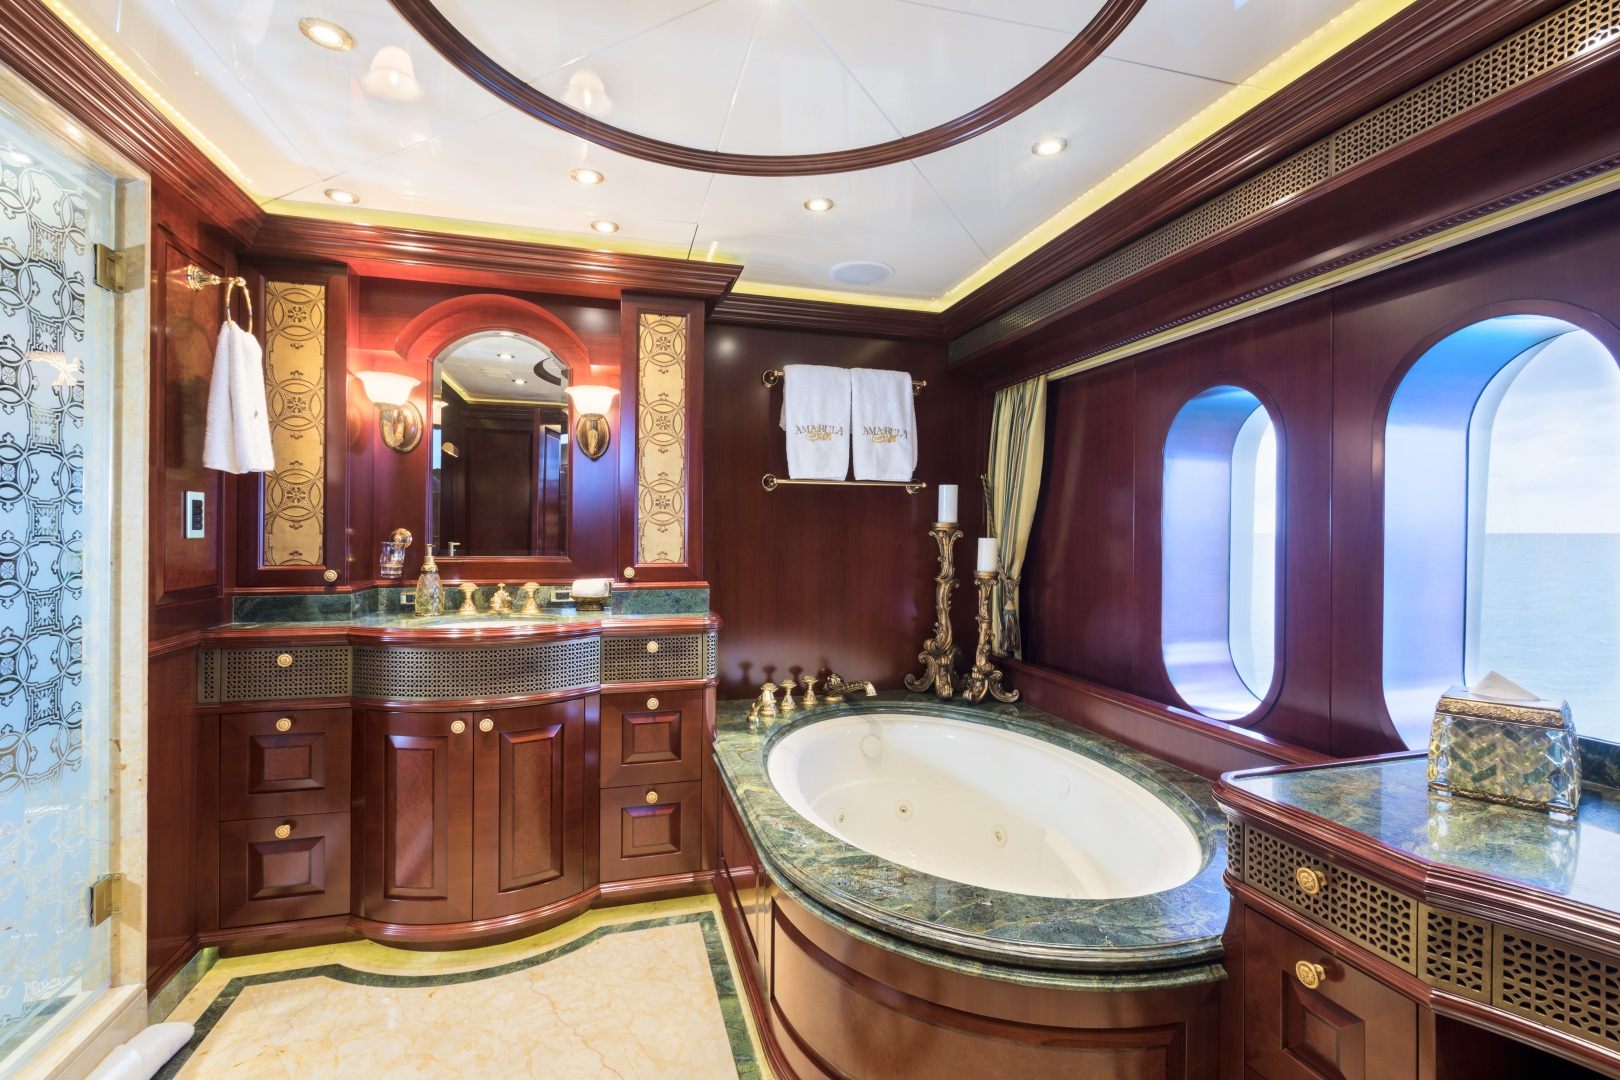 Trinity Yachts-164 Tri-deck Motor Yacht 2008-Amarula Sun Fort Lauderdale-Florida-United States-Master Suite Hers-1513925 | Thumbnail